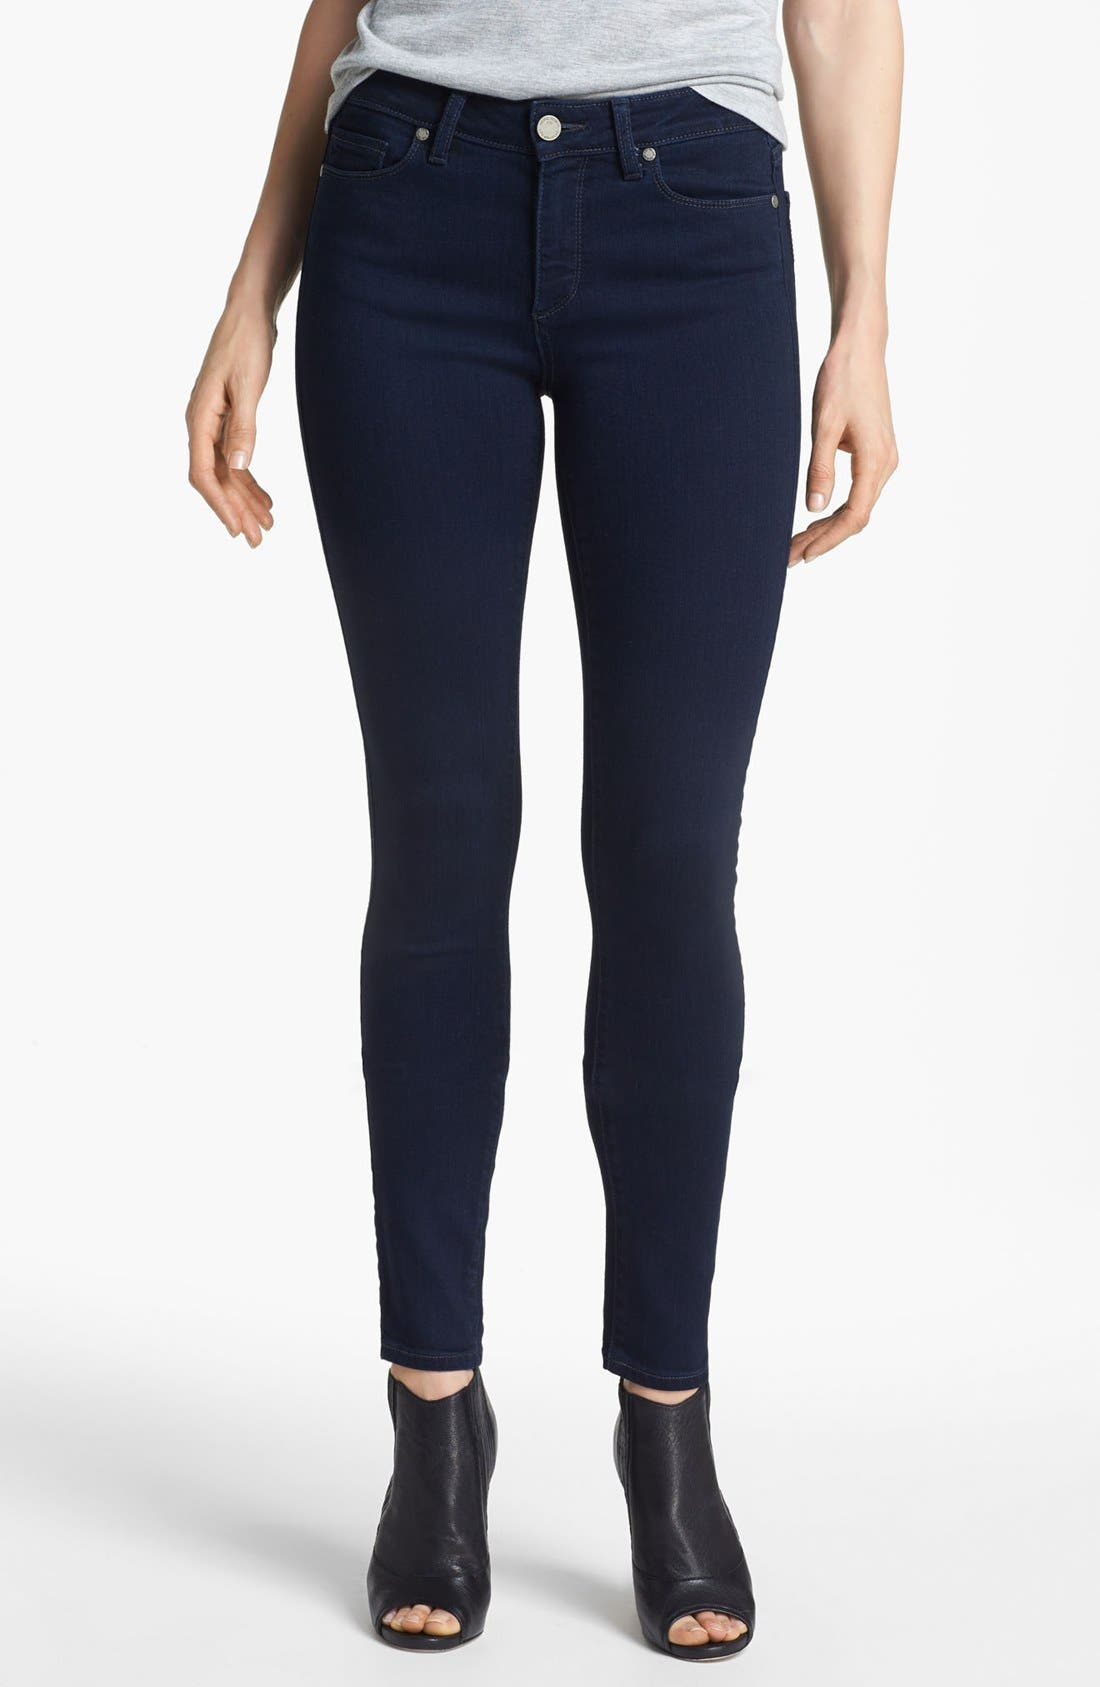 Alternate Image 1 Selected - Paige Denim 'Verdugo' Ultra Skinny Jeans (Emma)